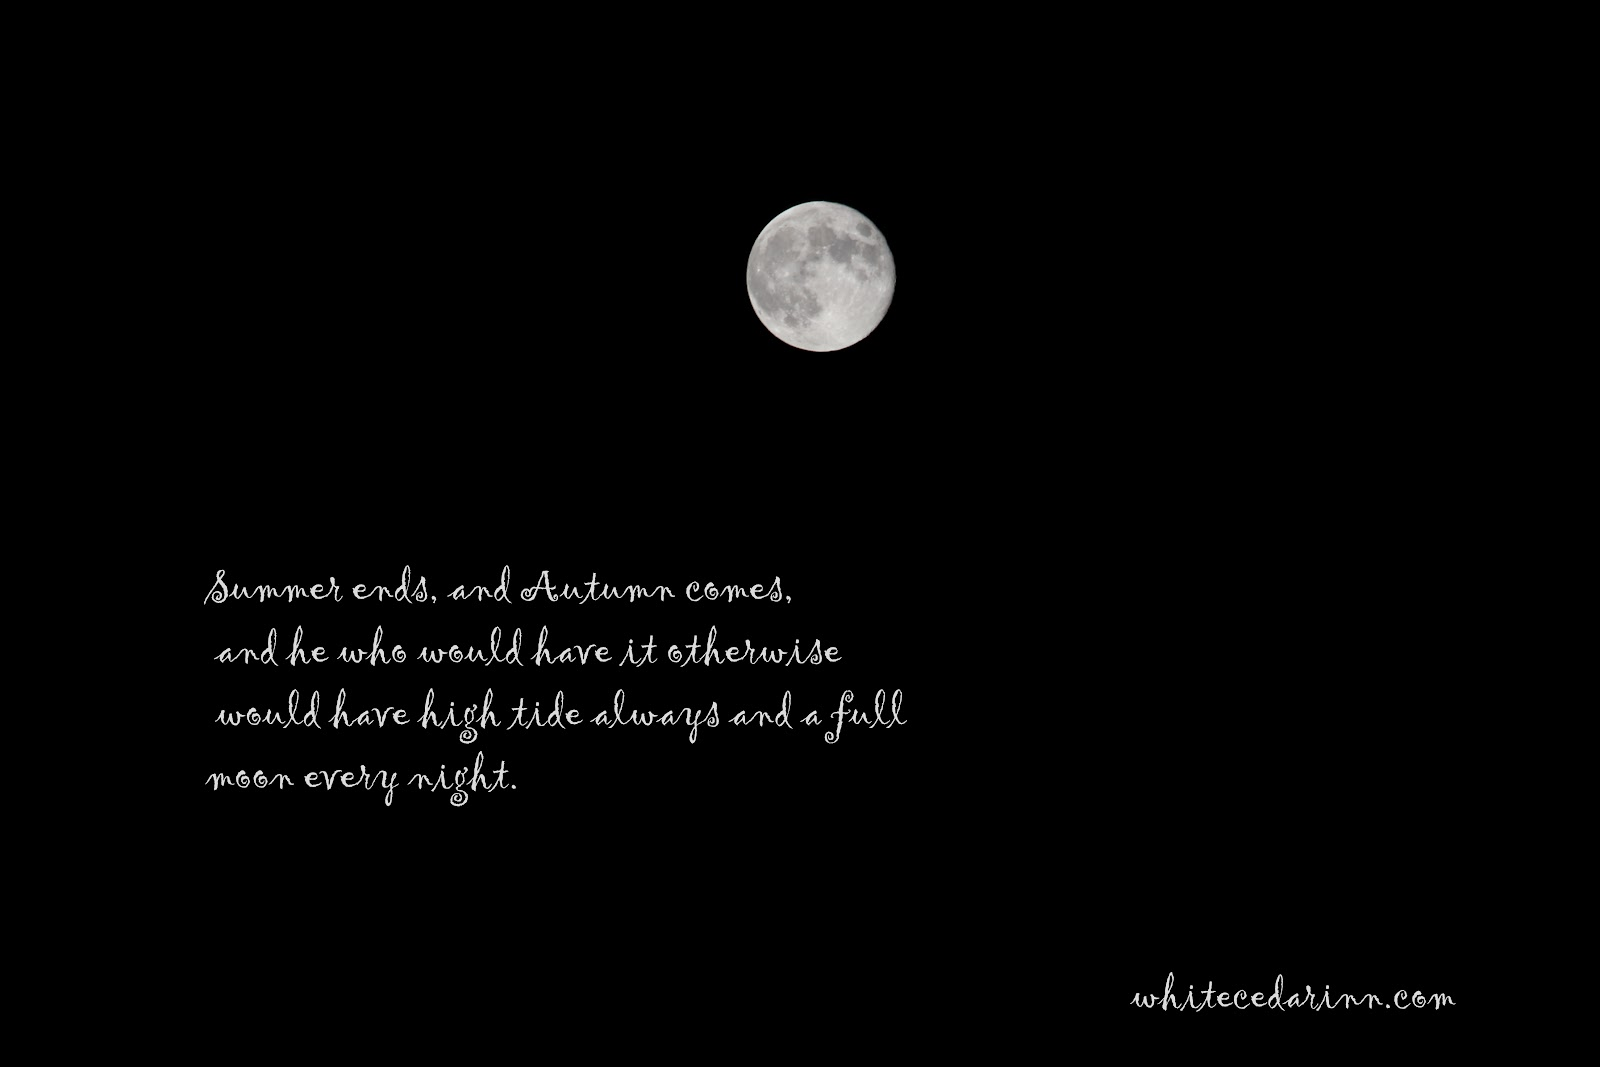 Quotes About Full Moon White Cedar Inn Today A Full Moon In Autumn